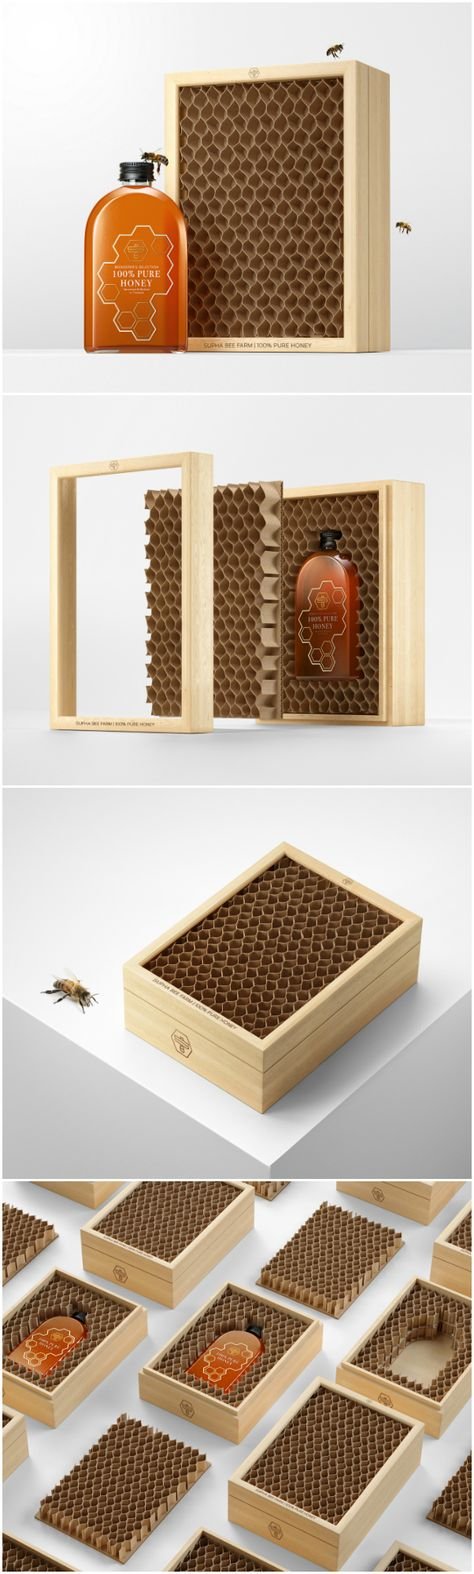 Supha Bee Farm Honey Packaging Design by Prompt Design - World Brand Design Society